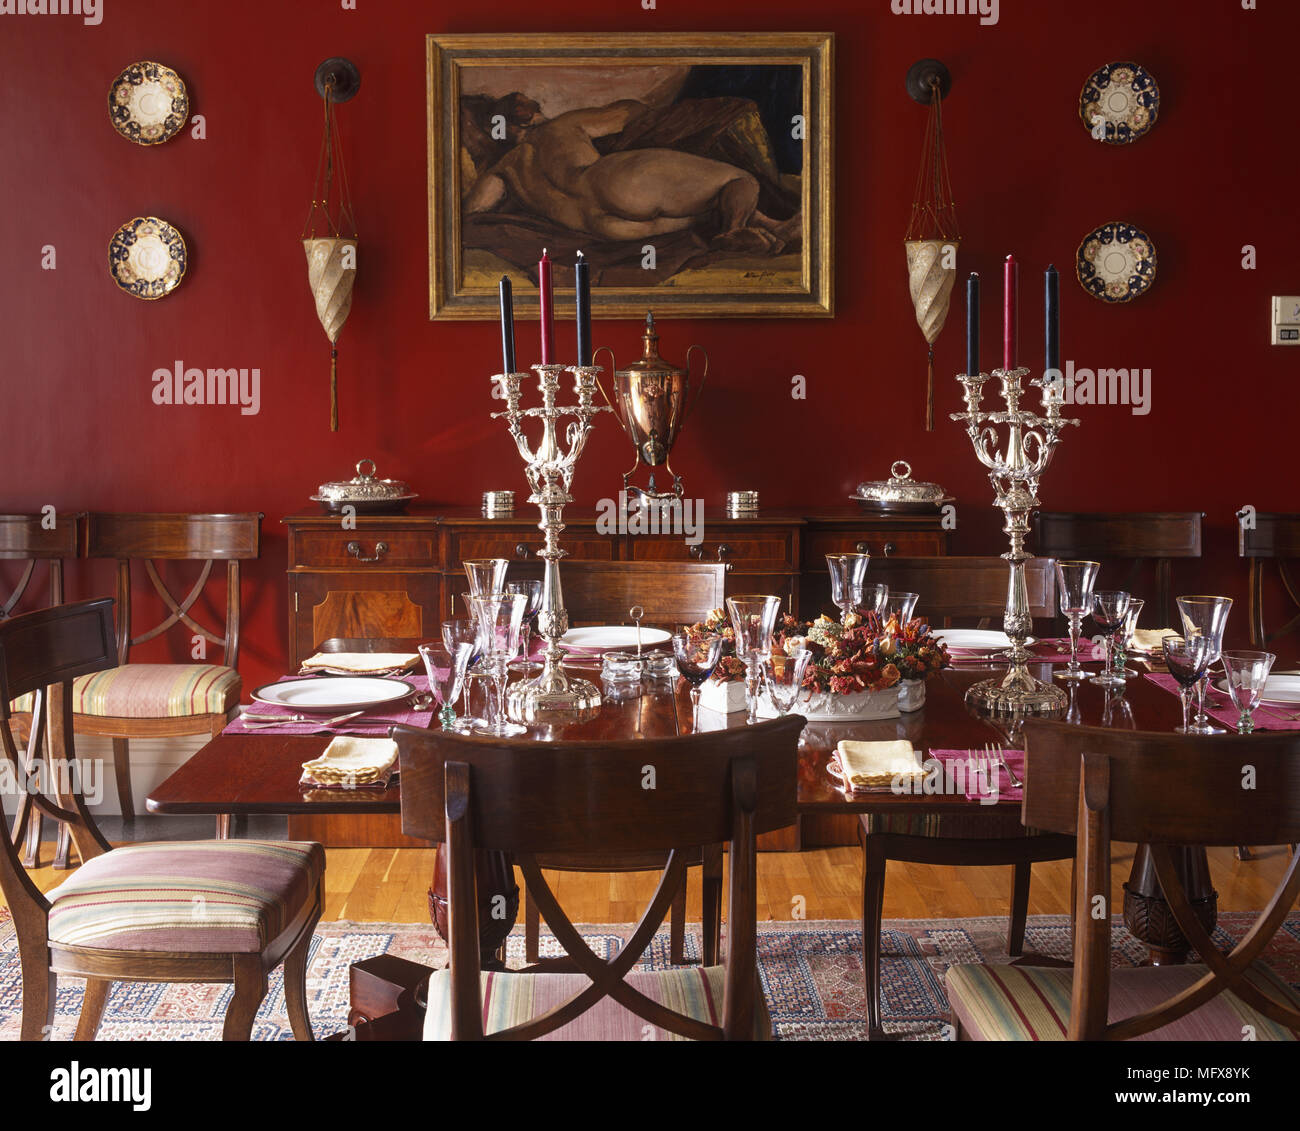 Silver Candlesticks On Table Set For Dinner In Traditional Style Red Dining Room Stock Photo Alamy